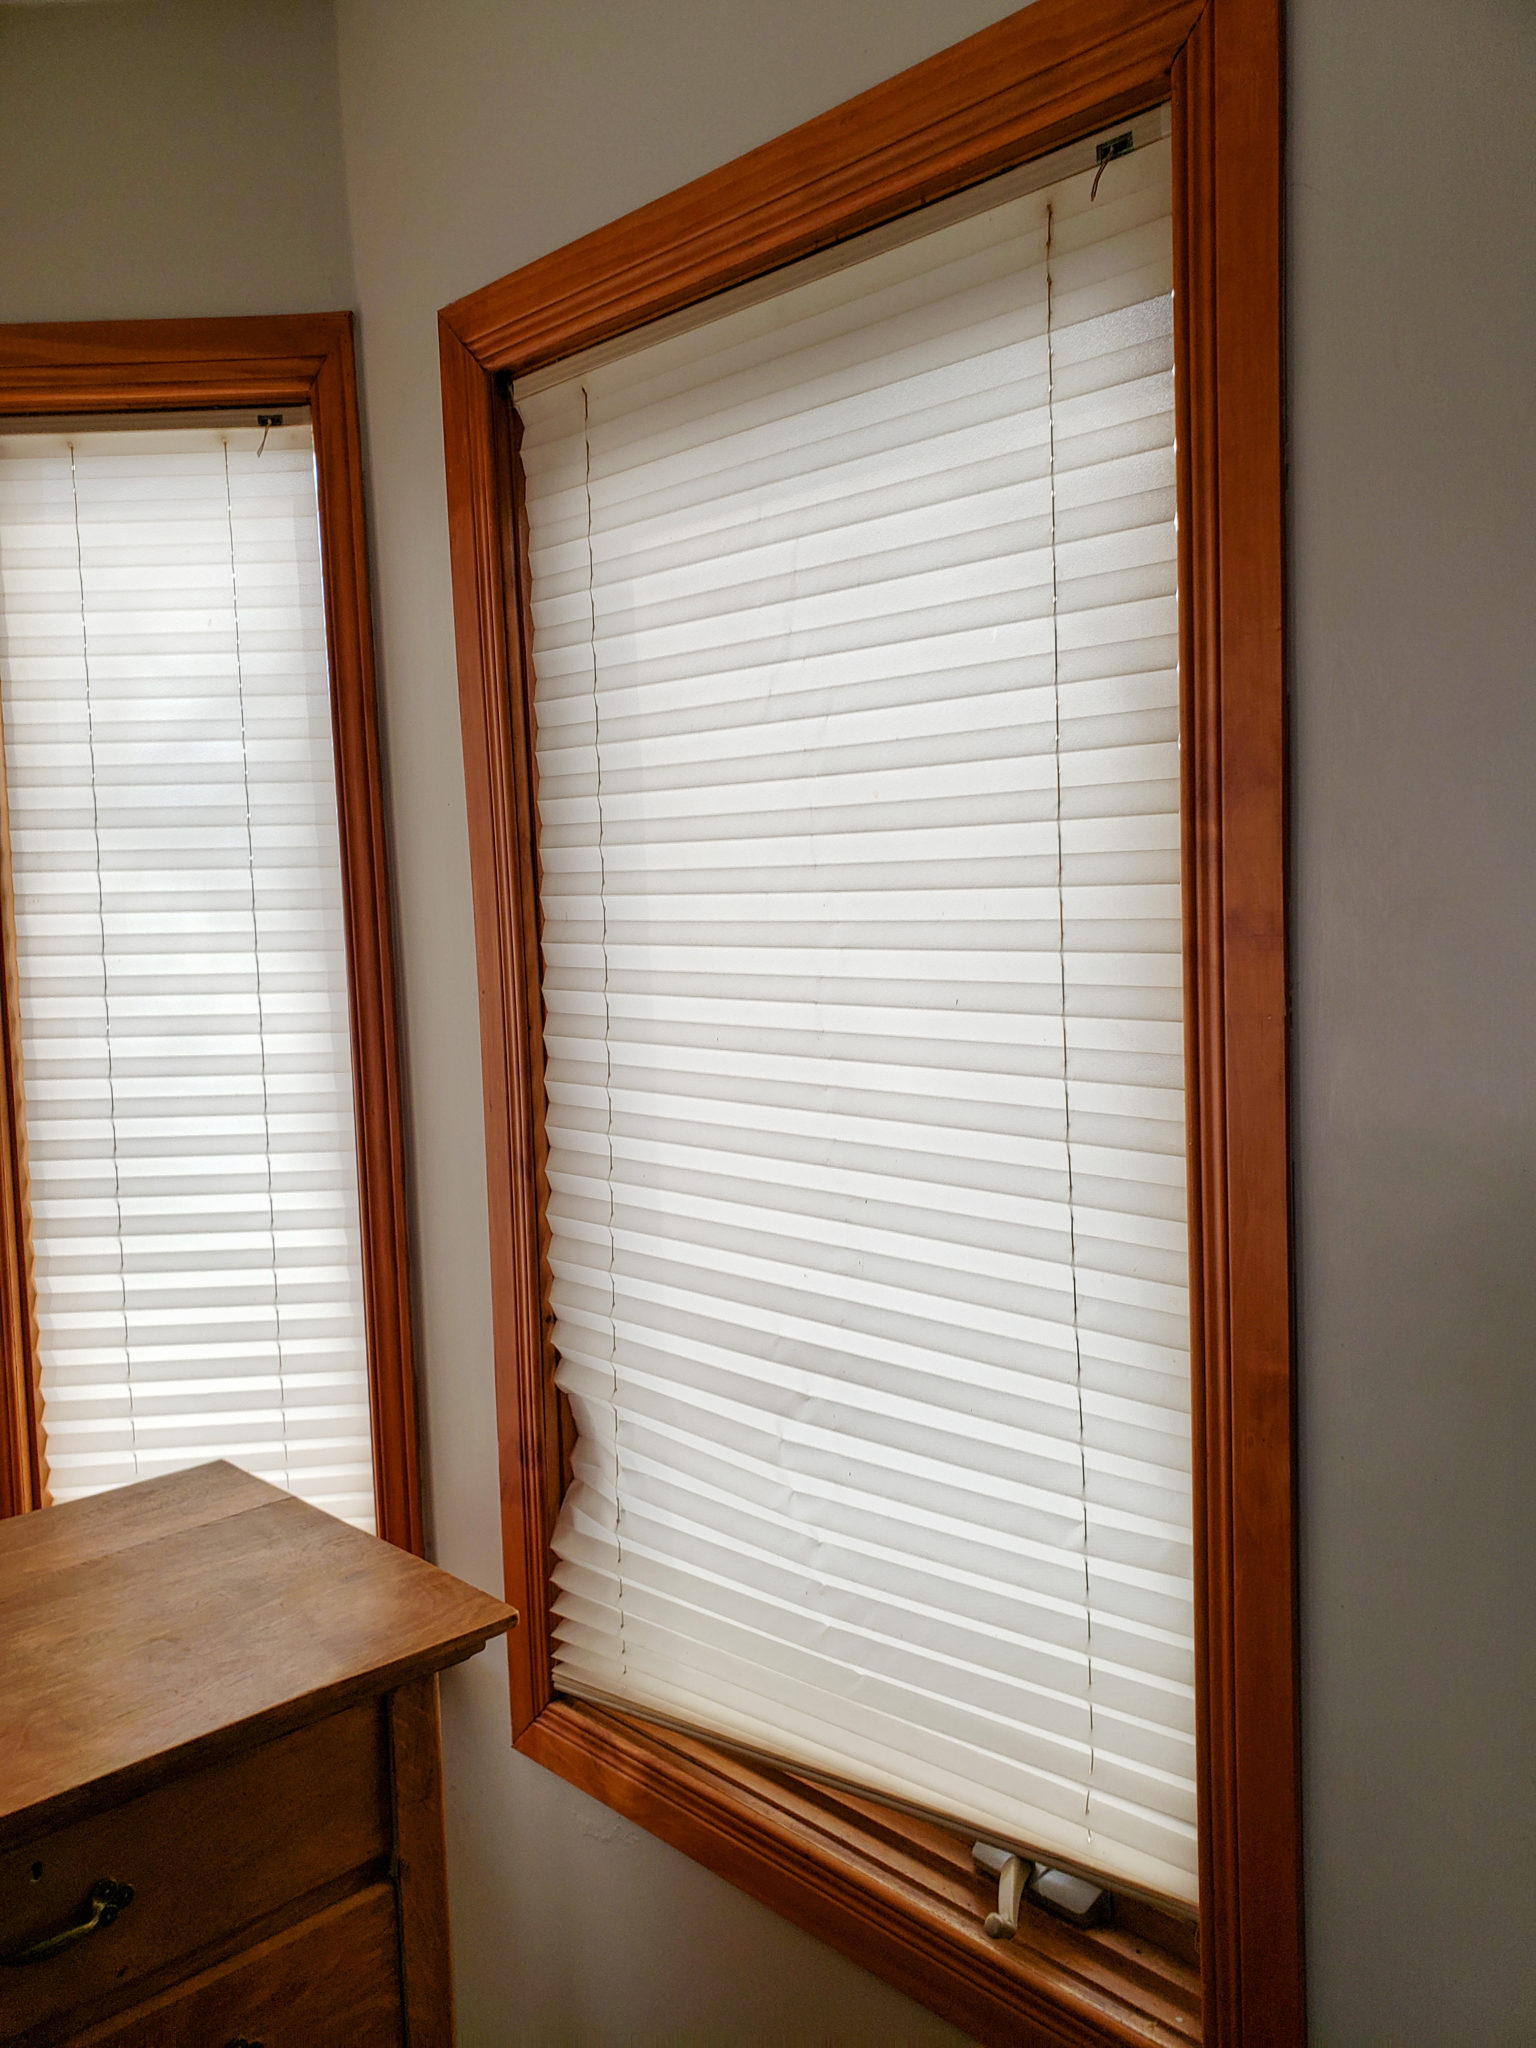 Kitchen window coverings - Before